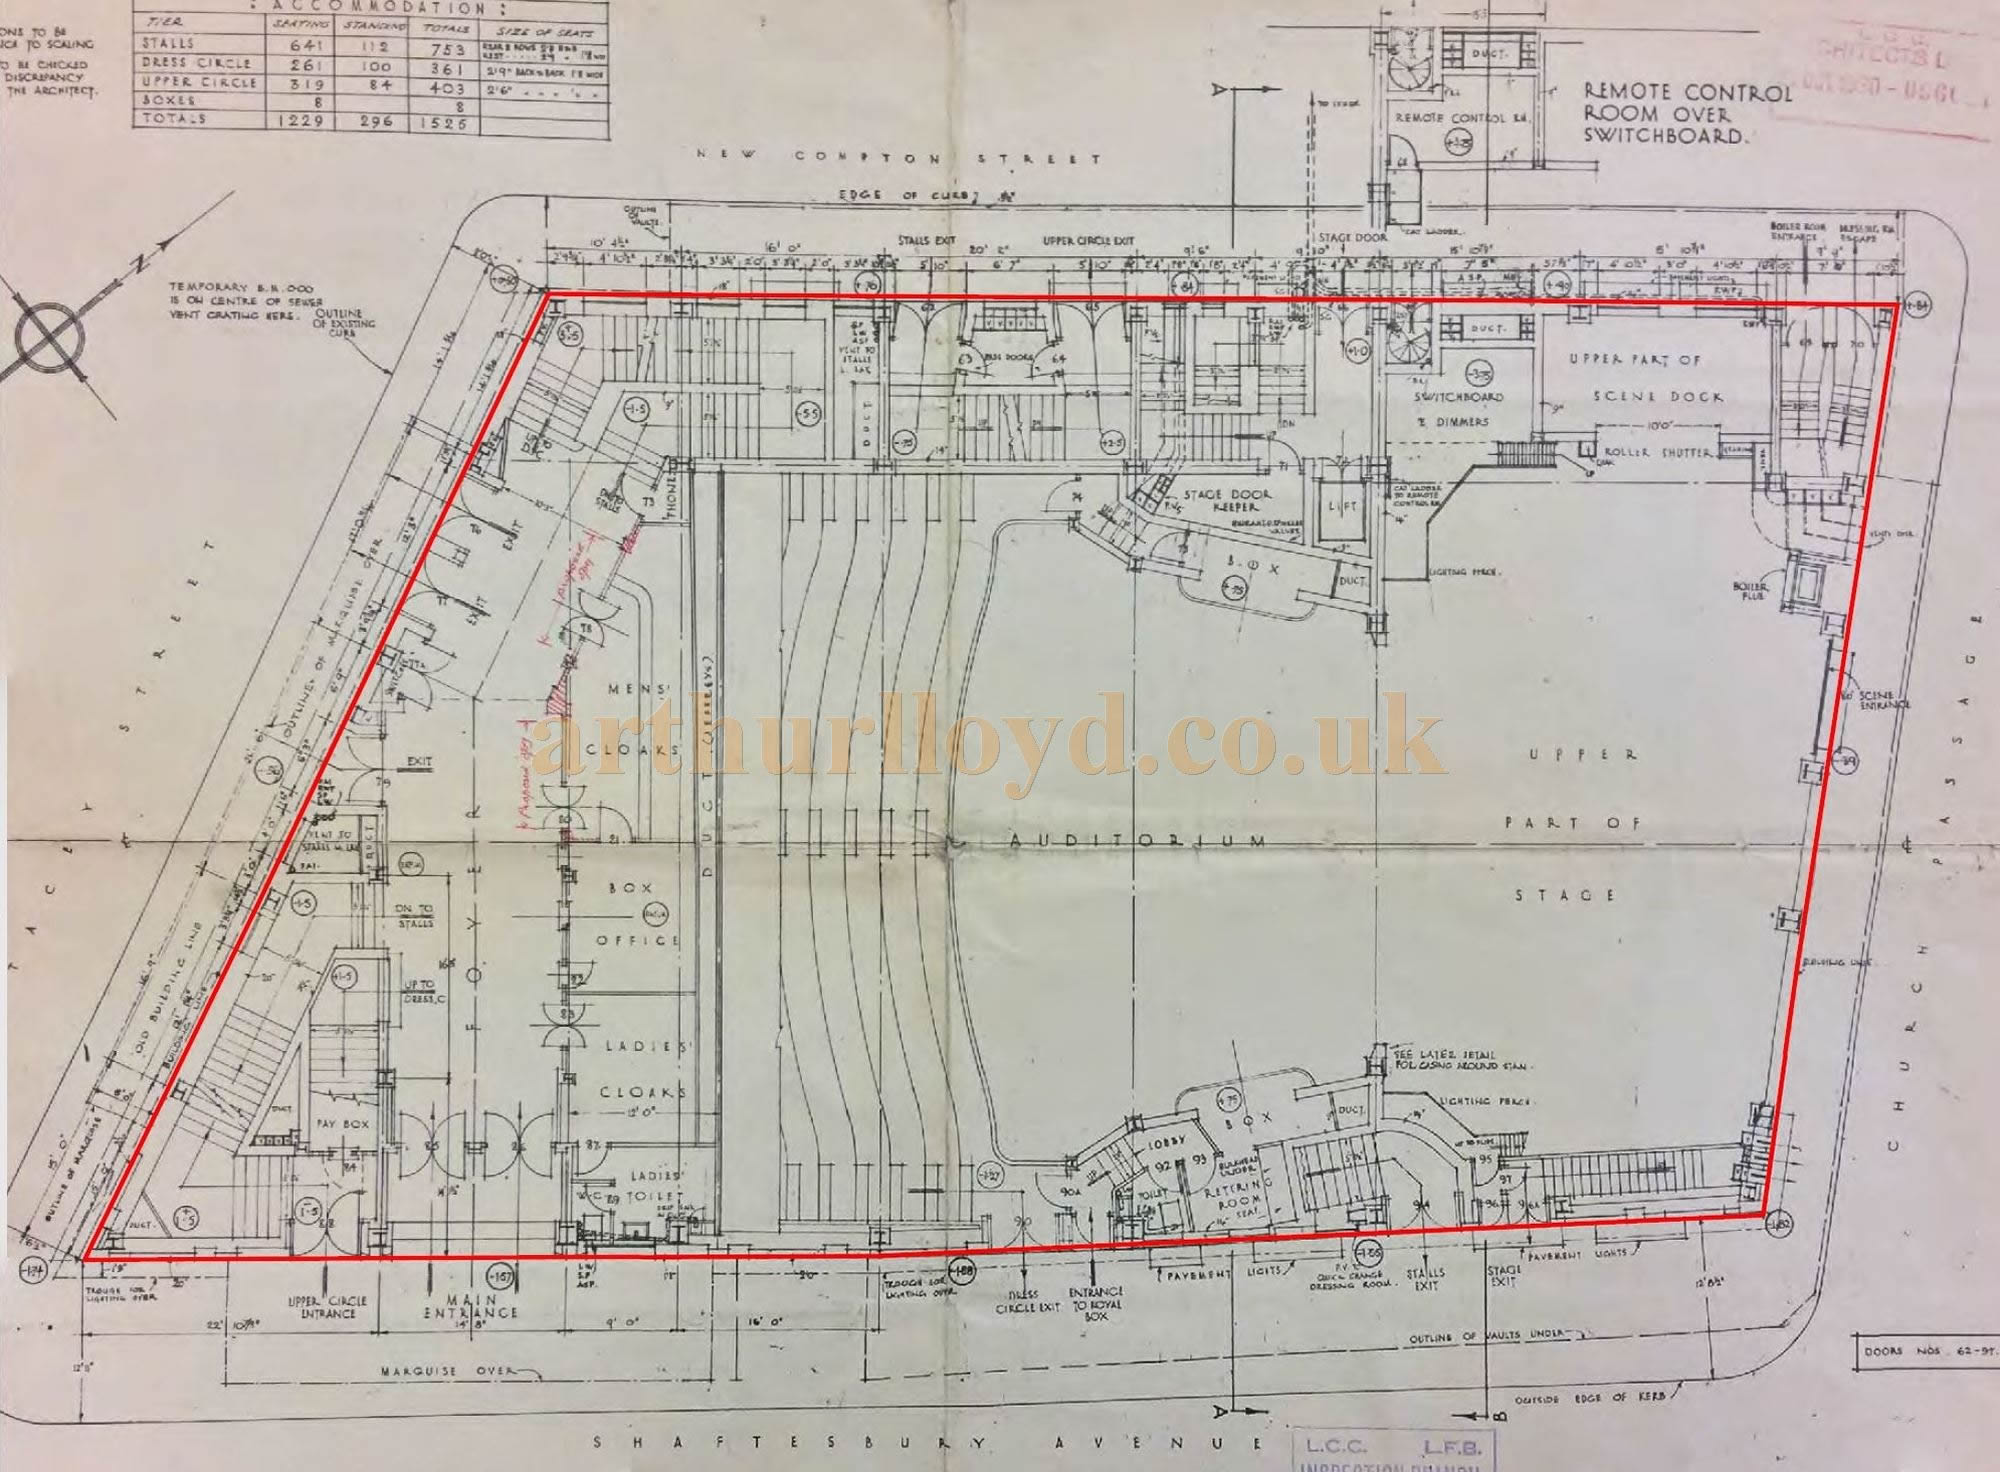 A 1930's Street Level Plan for the former Saville Theatre.